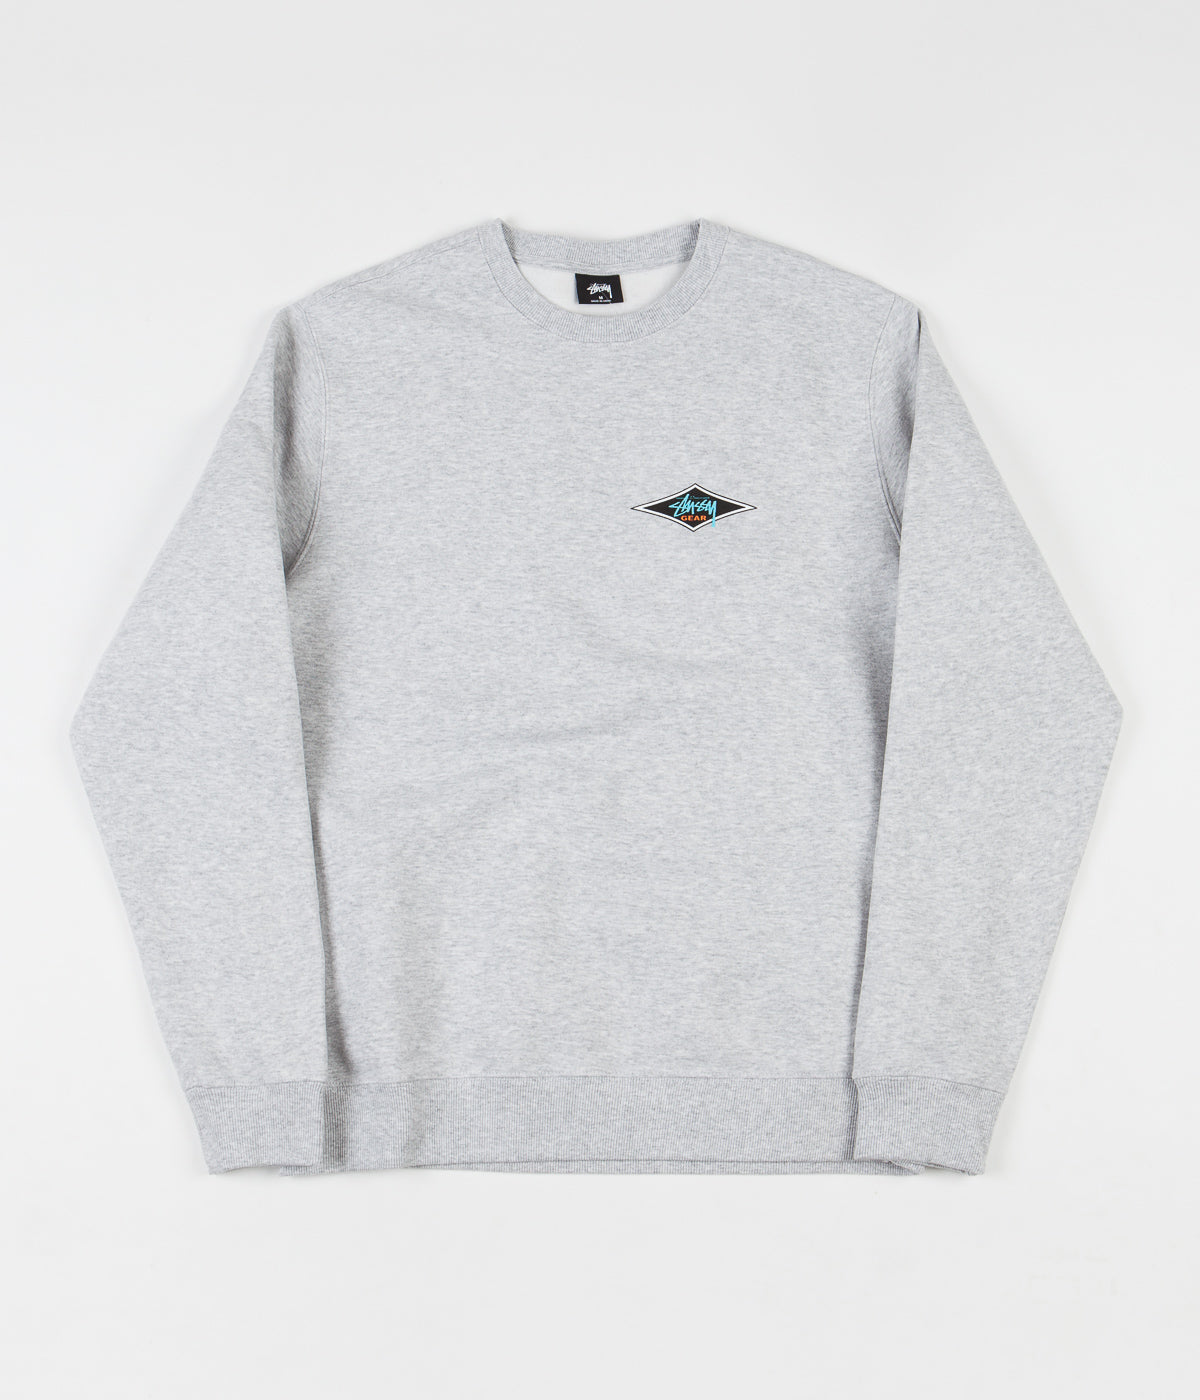 Stussy Stussy Gear Crewneck Sweatshirt - Ash Heather